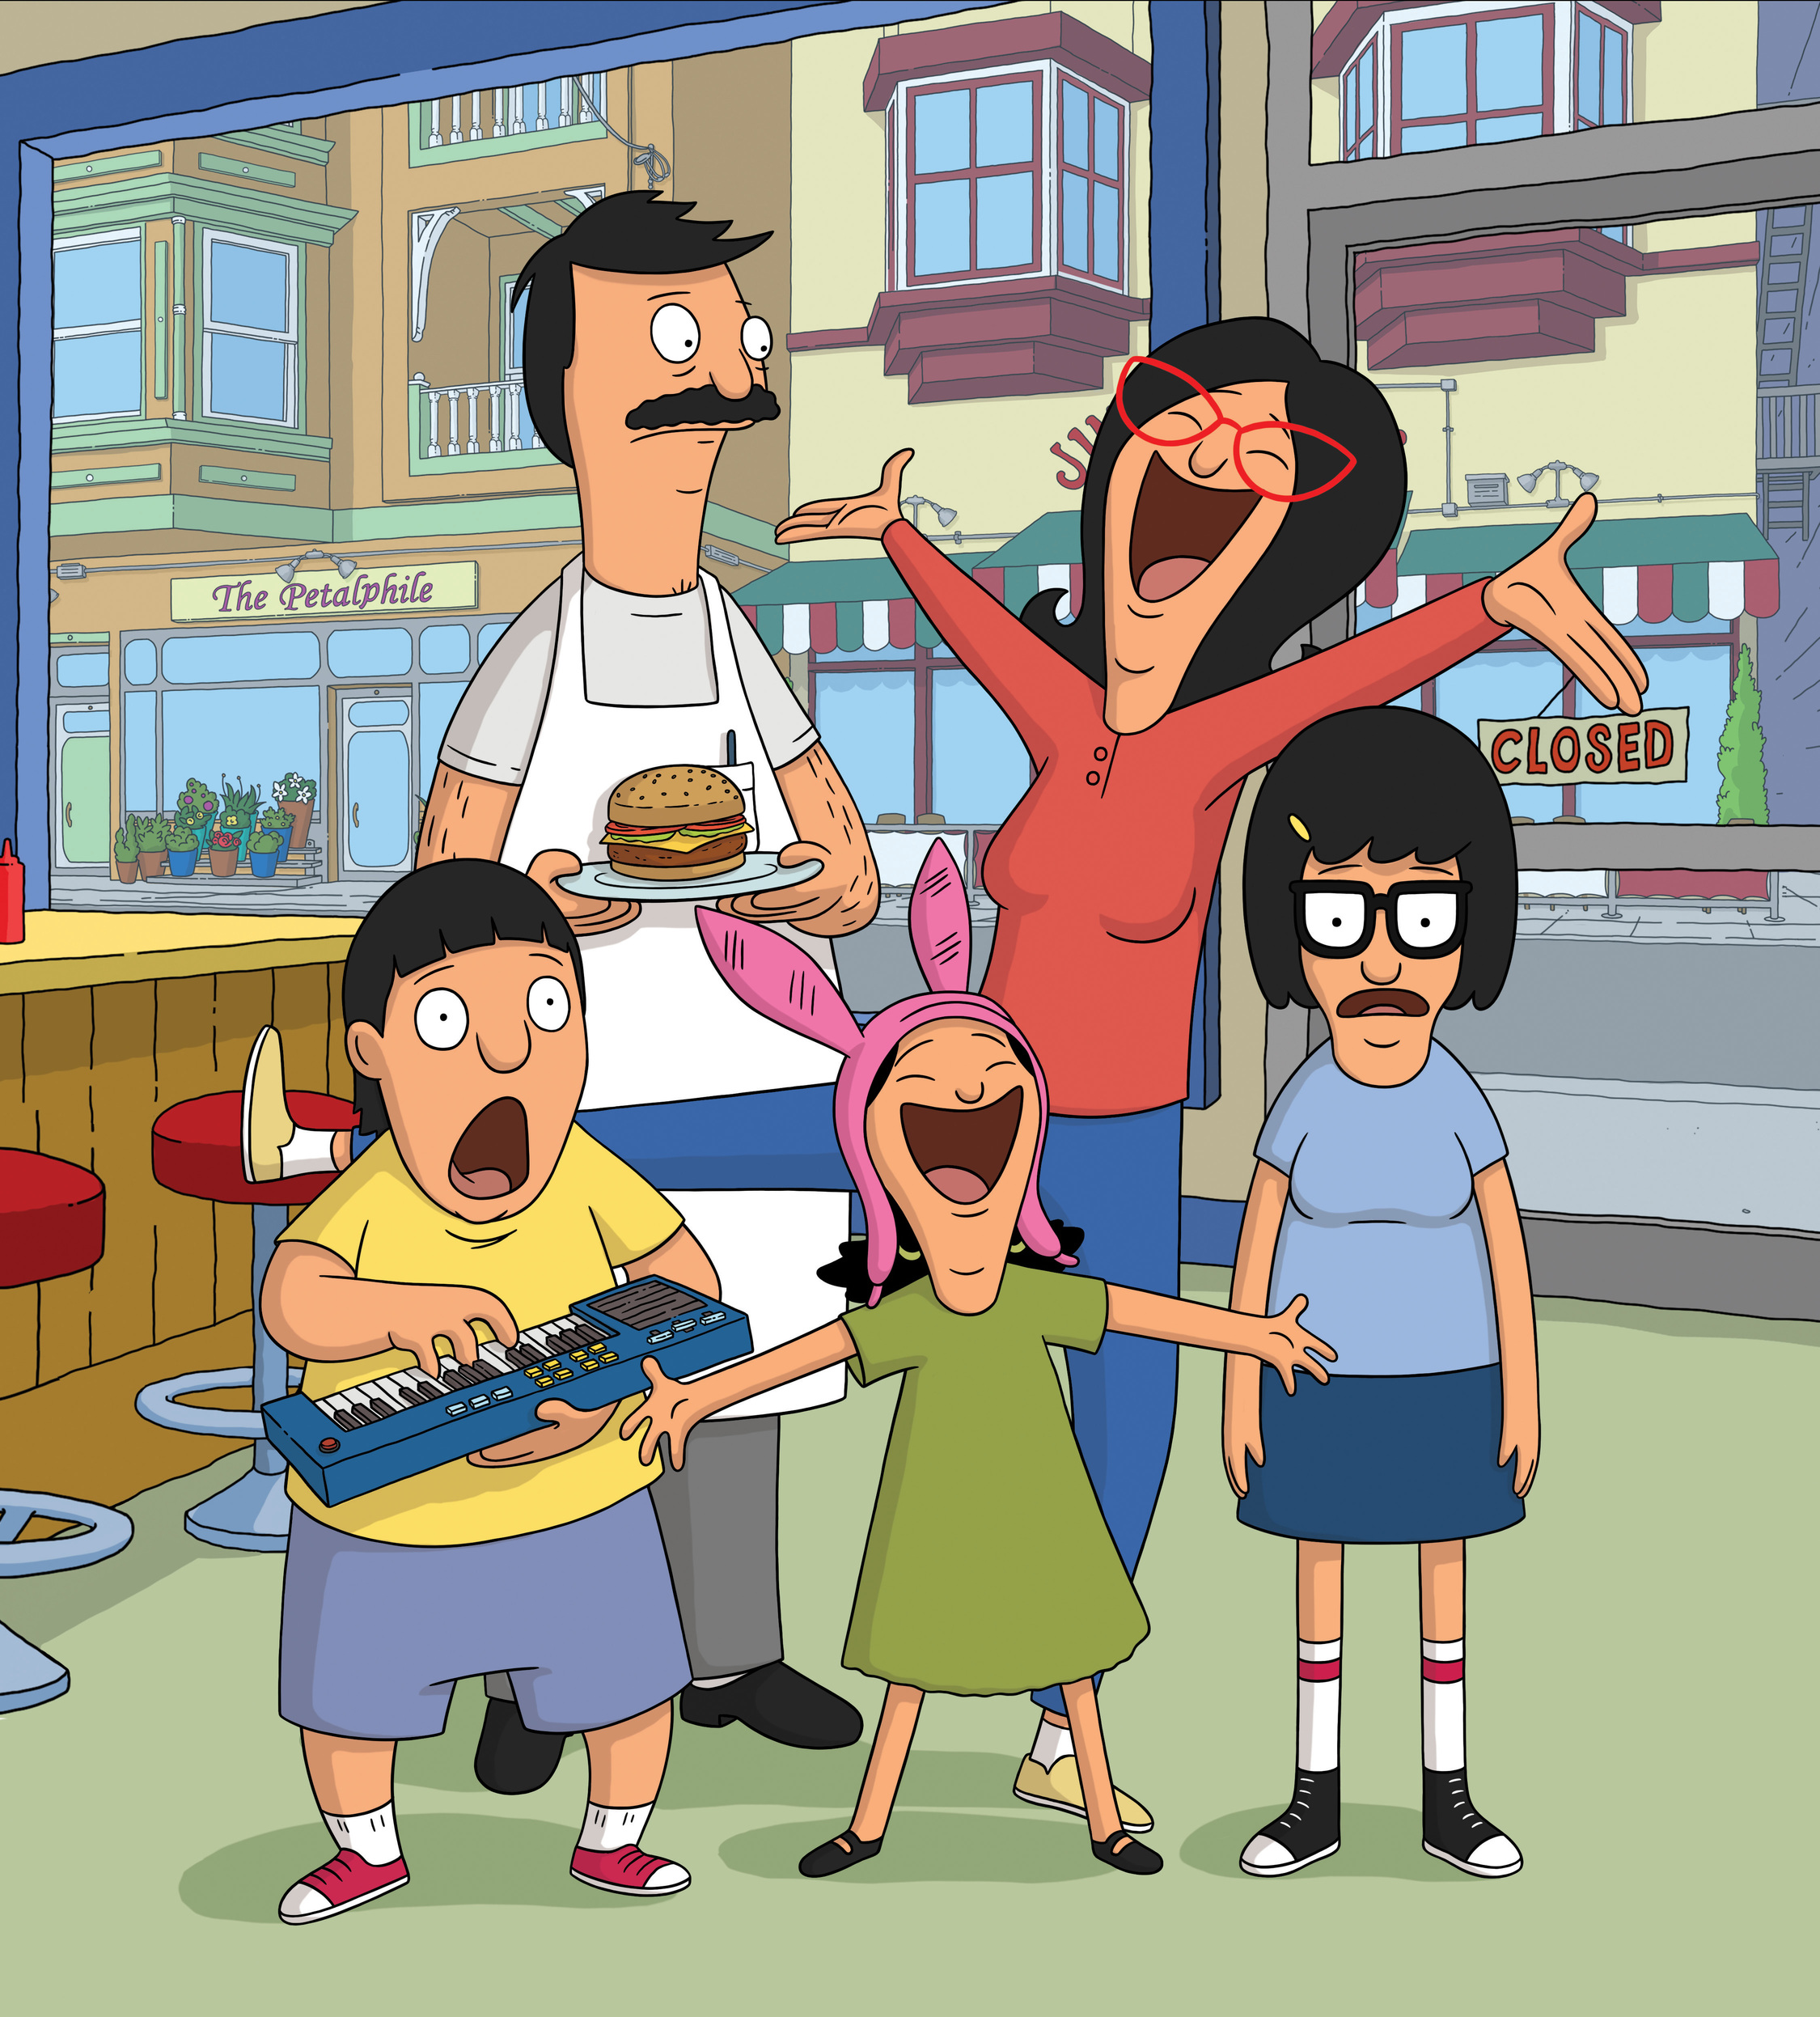 BOB'S BURGERS: Join the Belcher family for Season Five of the Emmy Award winning BOB'S BURGERS Sundays on FOX. BOB'S BURGERS ª and © 2014 TCFFC ALL RIGHTS RESERVED.